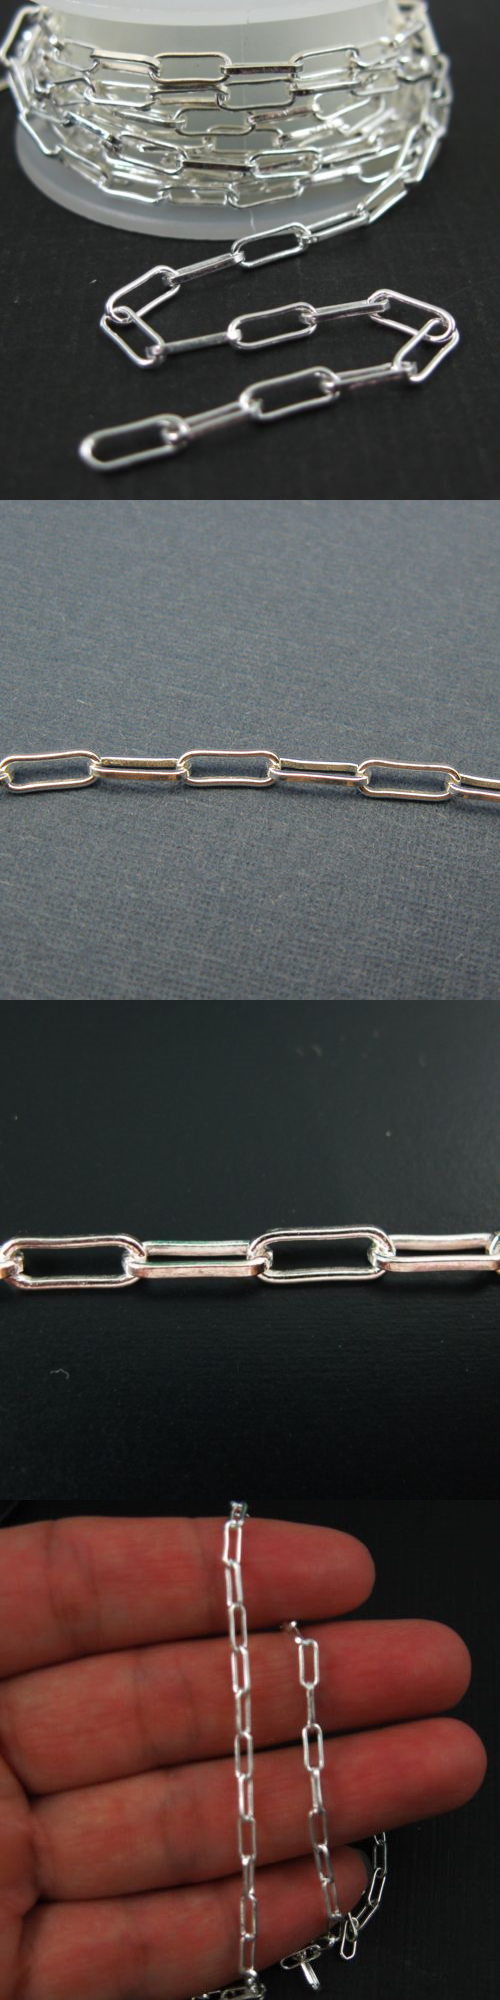 stainless bulk and alibaba suppliers jewelry chain at steel hot showroom chains com manufacturers wholesale